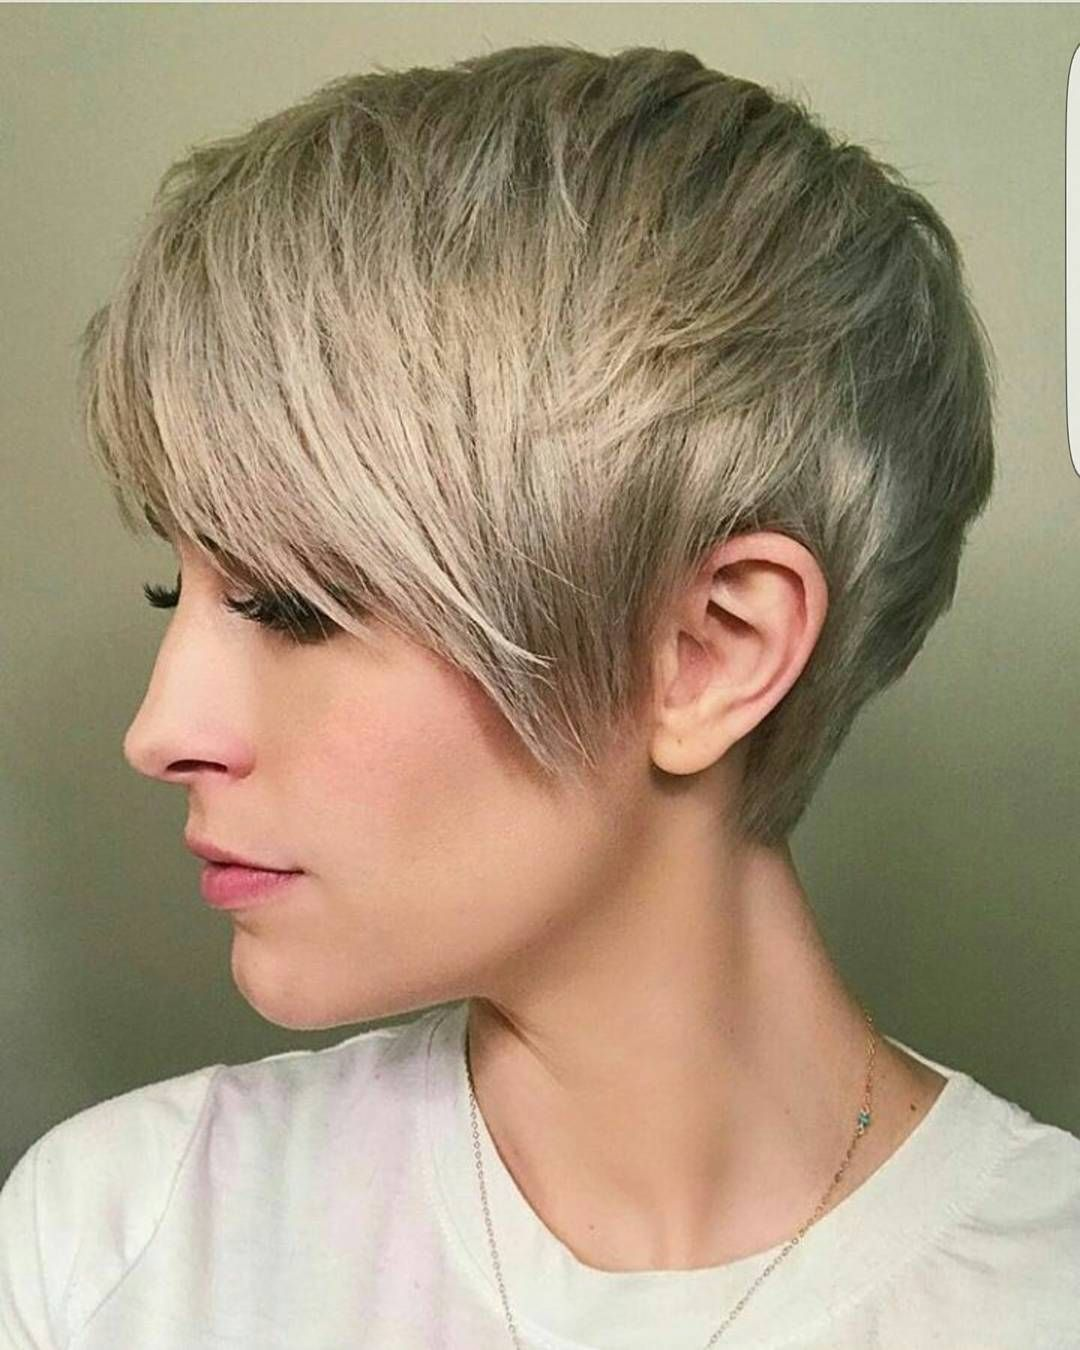 New Woman Short Hairstyles